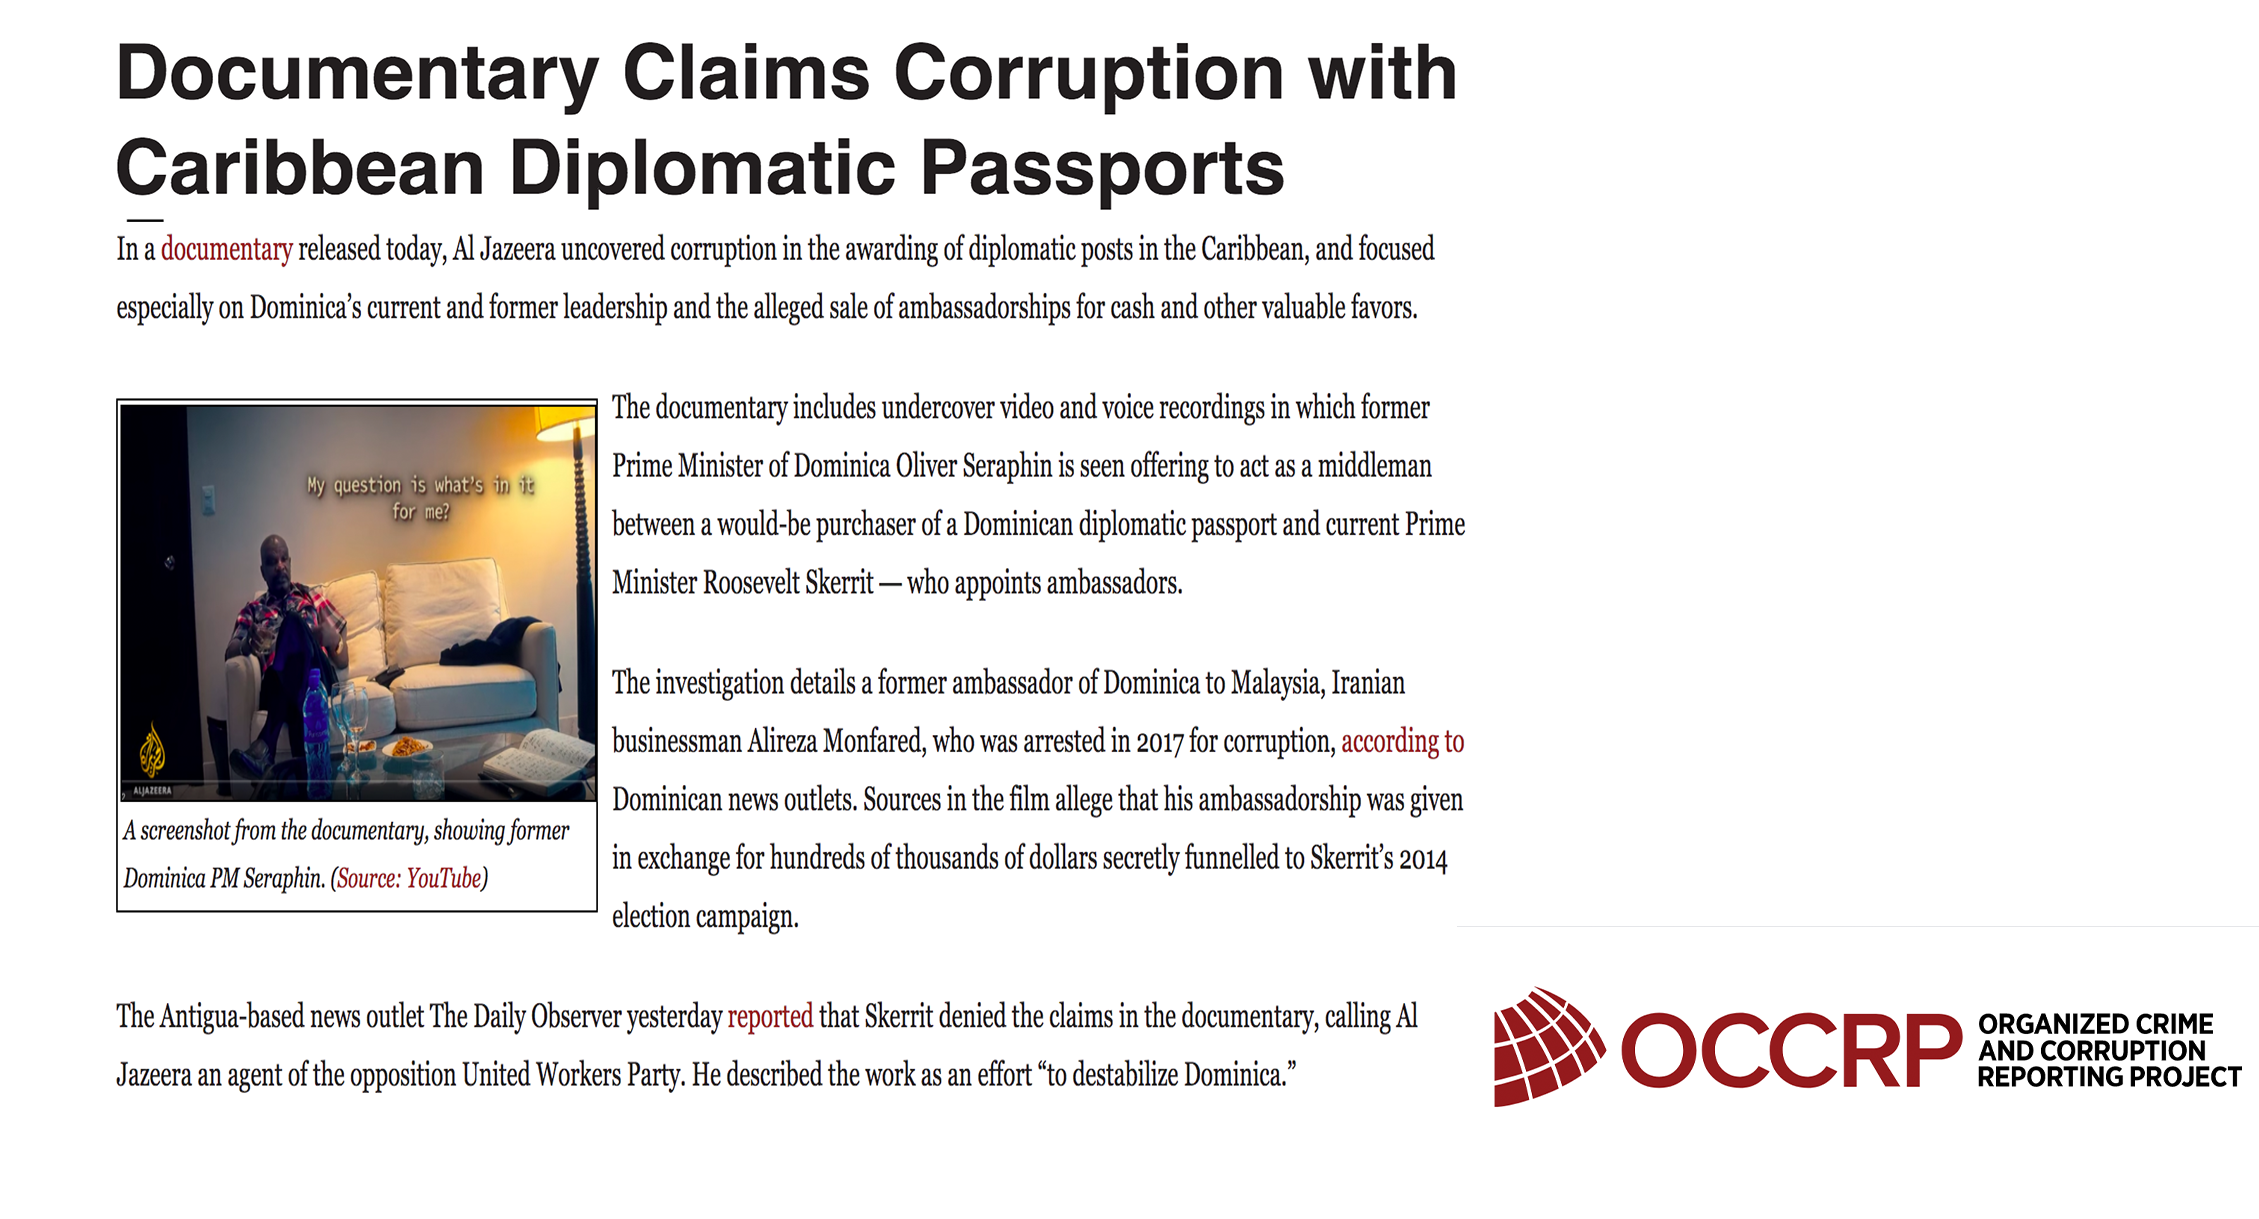 OCCRP: Documentary Claims Corruption with Caribbean Diplomatic Passports